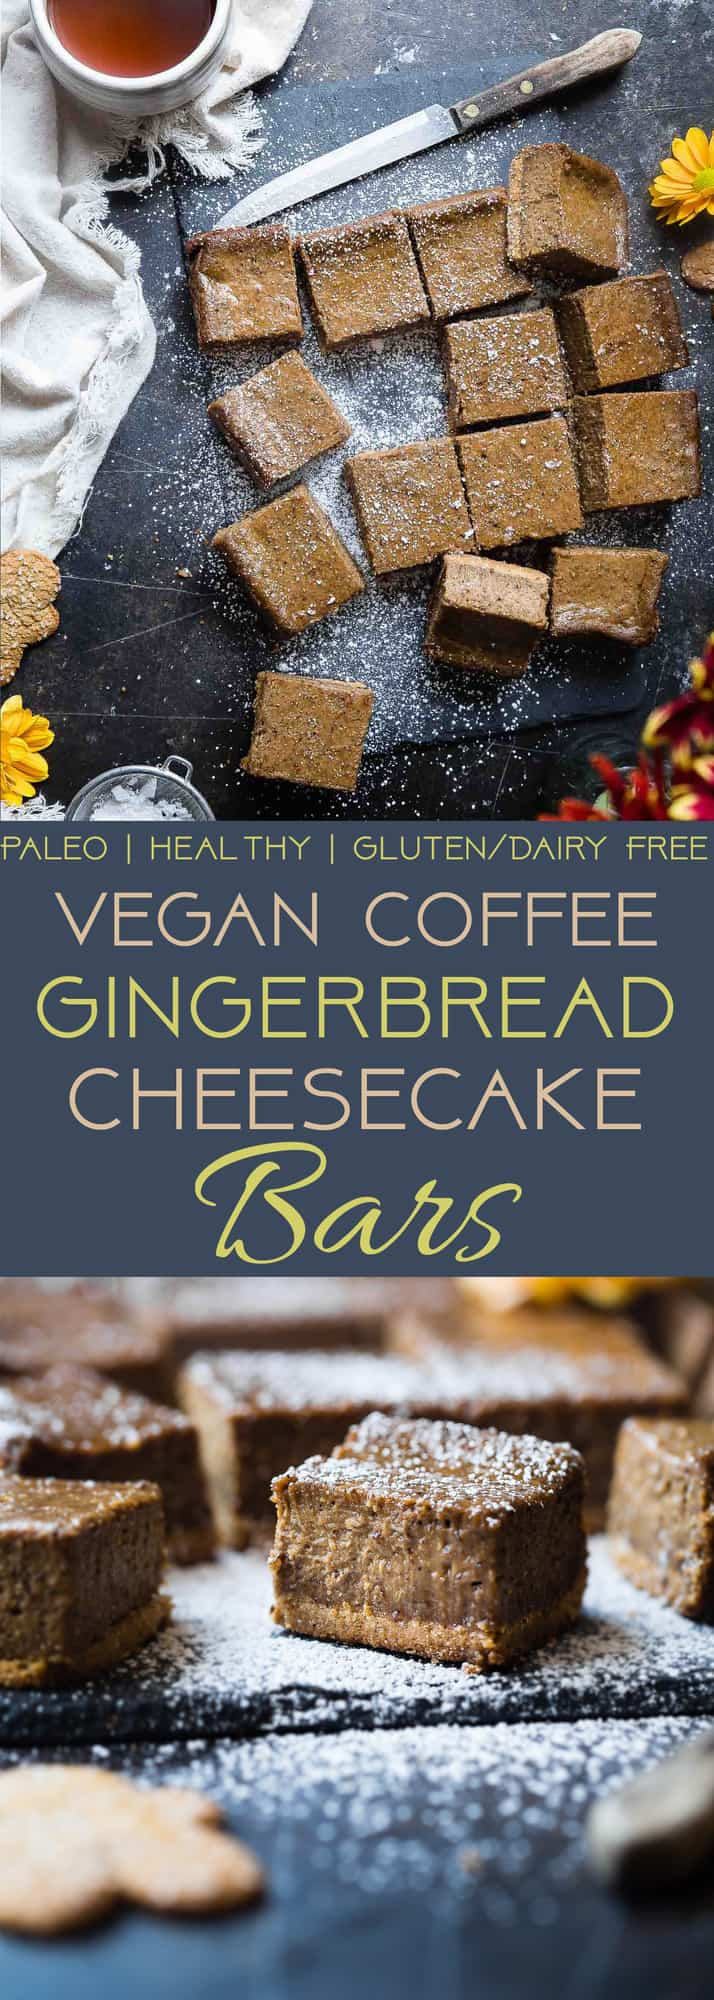 Dairy Free Vegan Gingerbread Cheesecake Bars - These little bites of gingerbread bliss are SO creamy and spicy-sweet! A paleo friendly, healthy and gluten free dessert for the holidays that you will never believe is dairy and egg free!  | Foodfaithfitness.com | @FoodFaithFit | gluten free gingerbread cheesecake. vegan cheesecake. healthy cheesecake bars. healthy christmas desserts. paleo cheesecake.